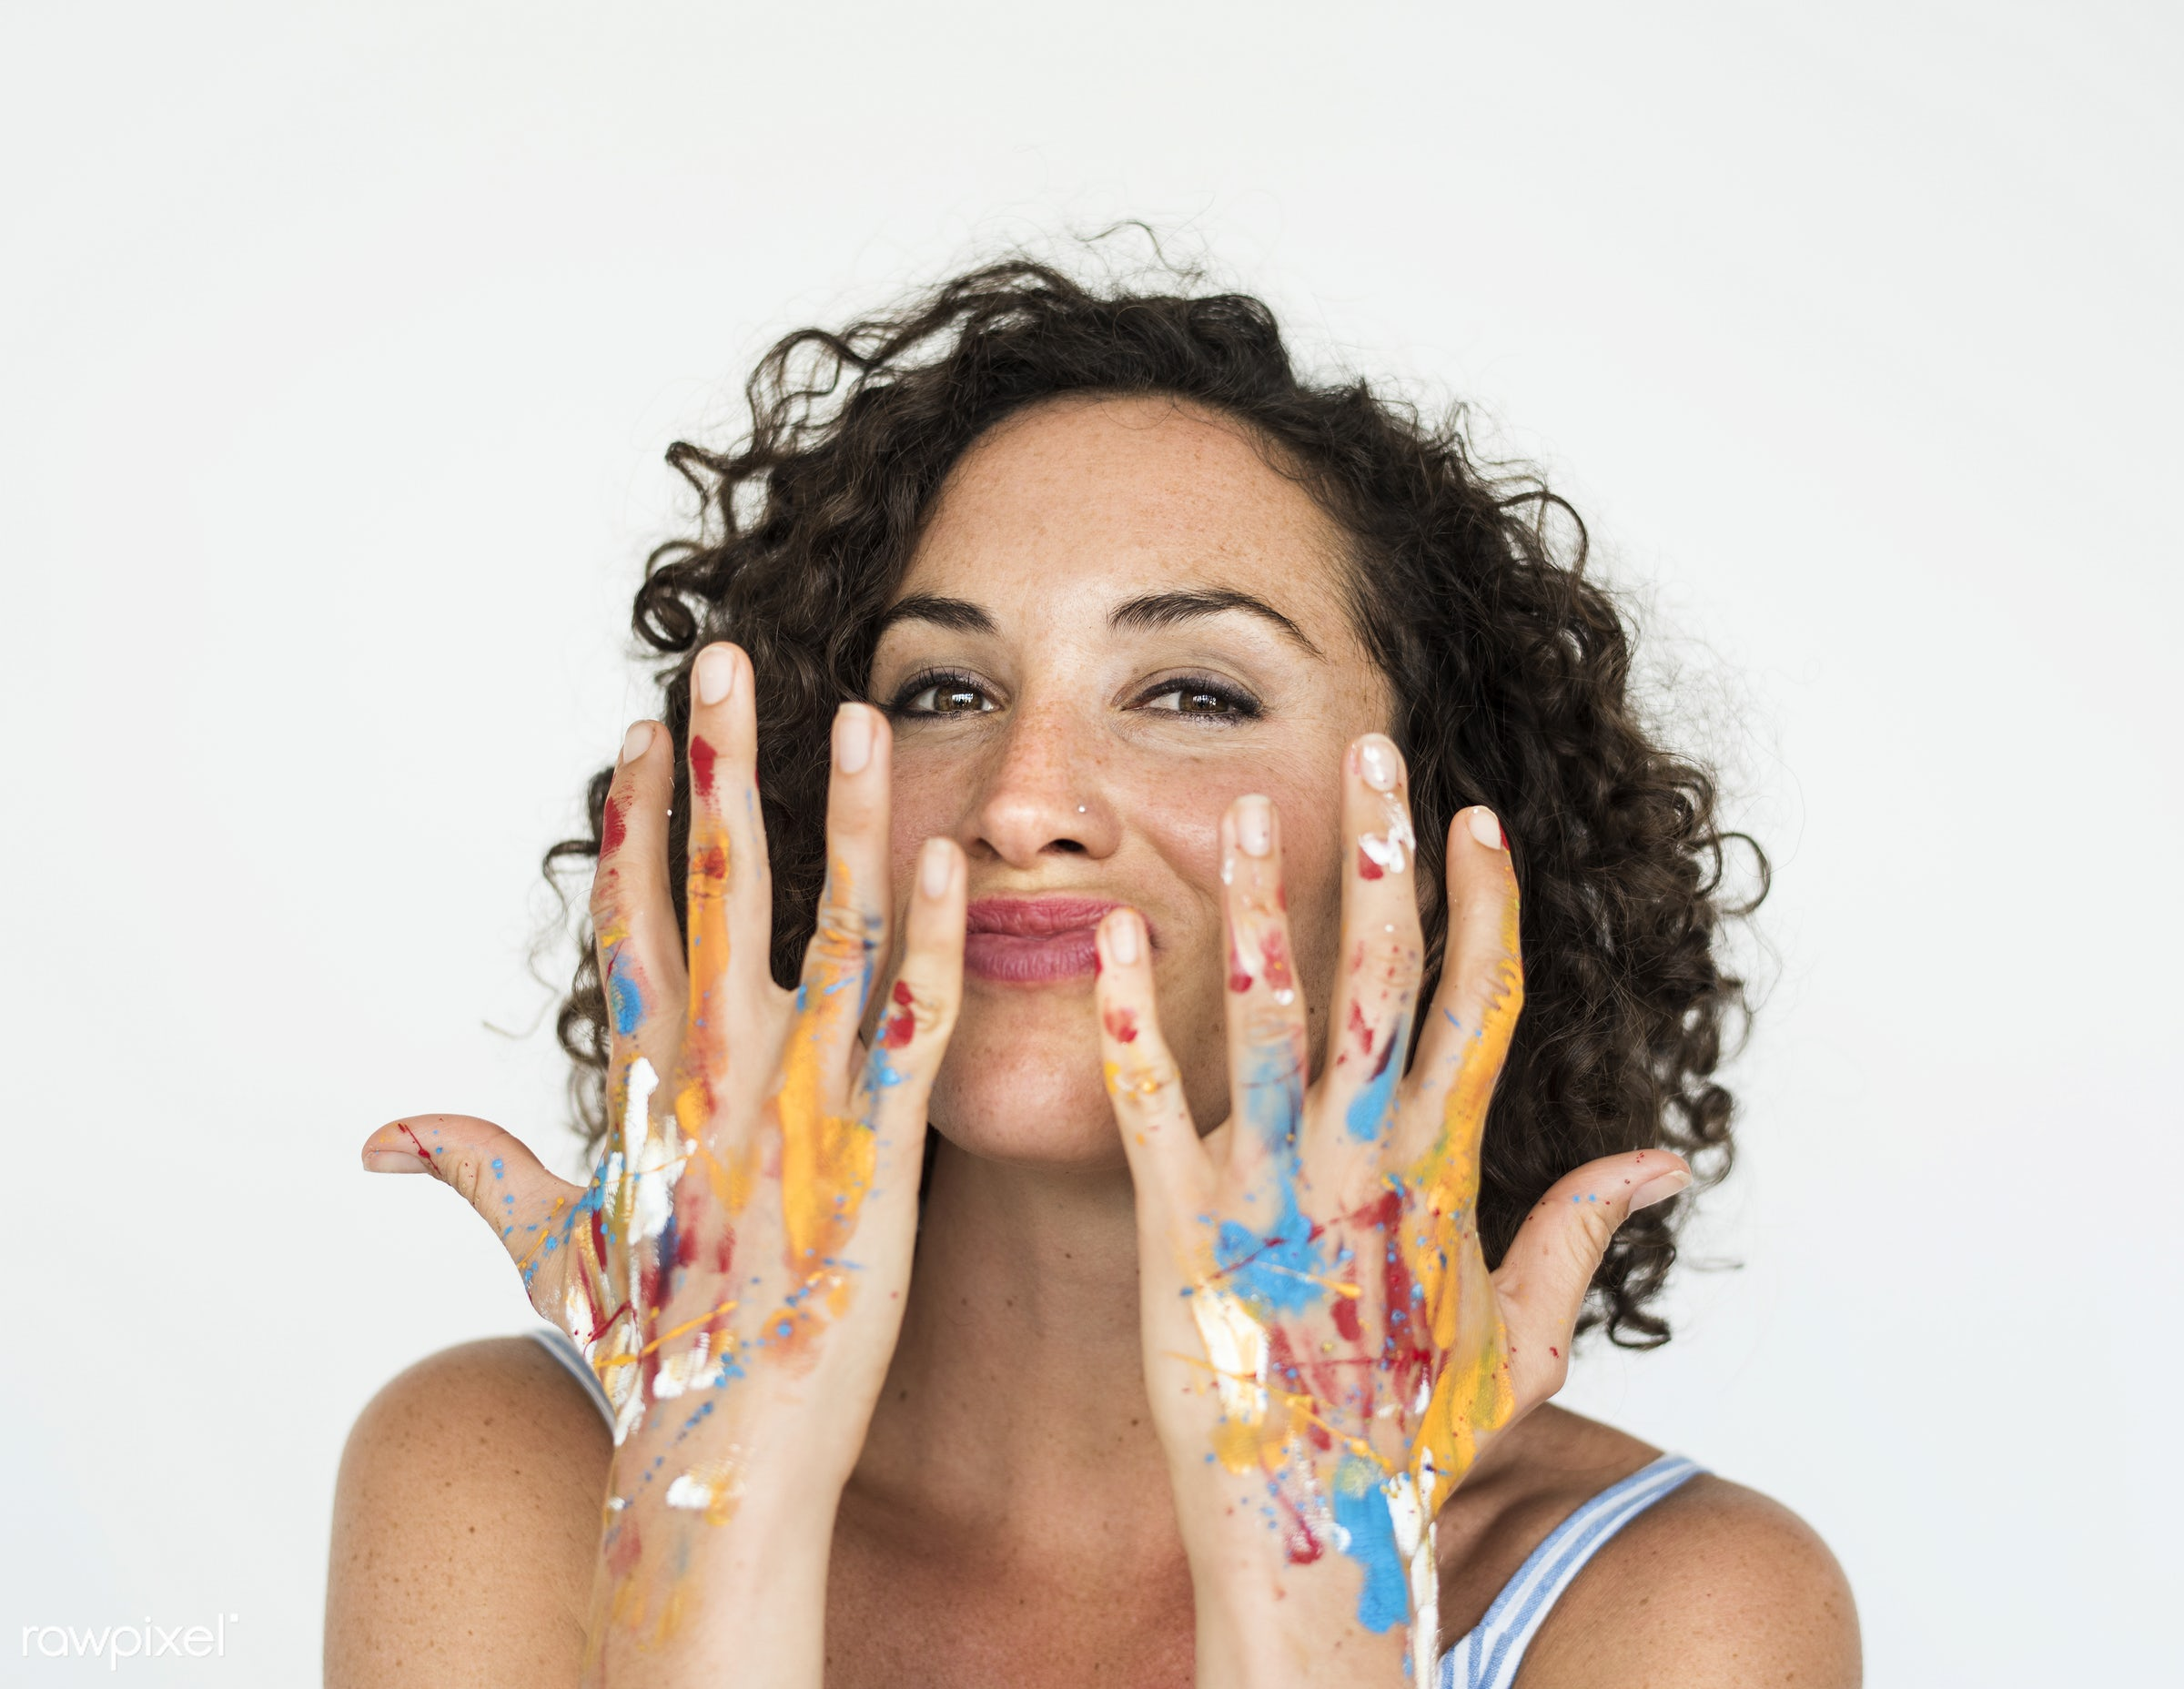 expression, studio, model, person, isolated on white, be creative, creativity, people, race, caucasian, colour, style, hands...